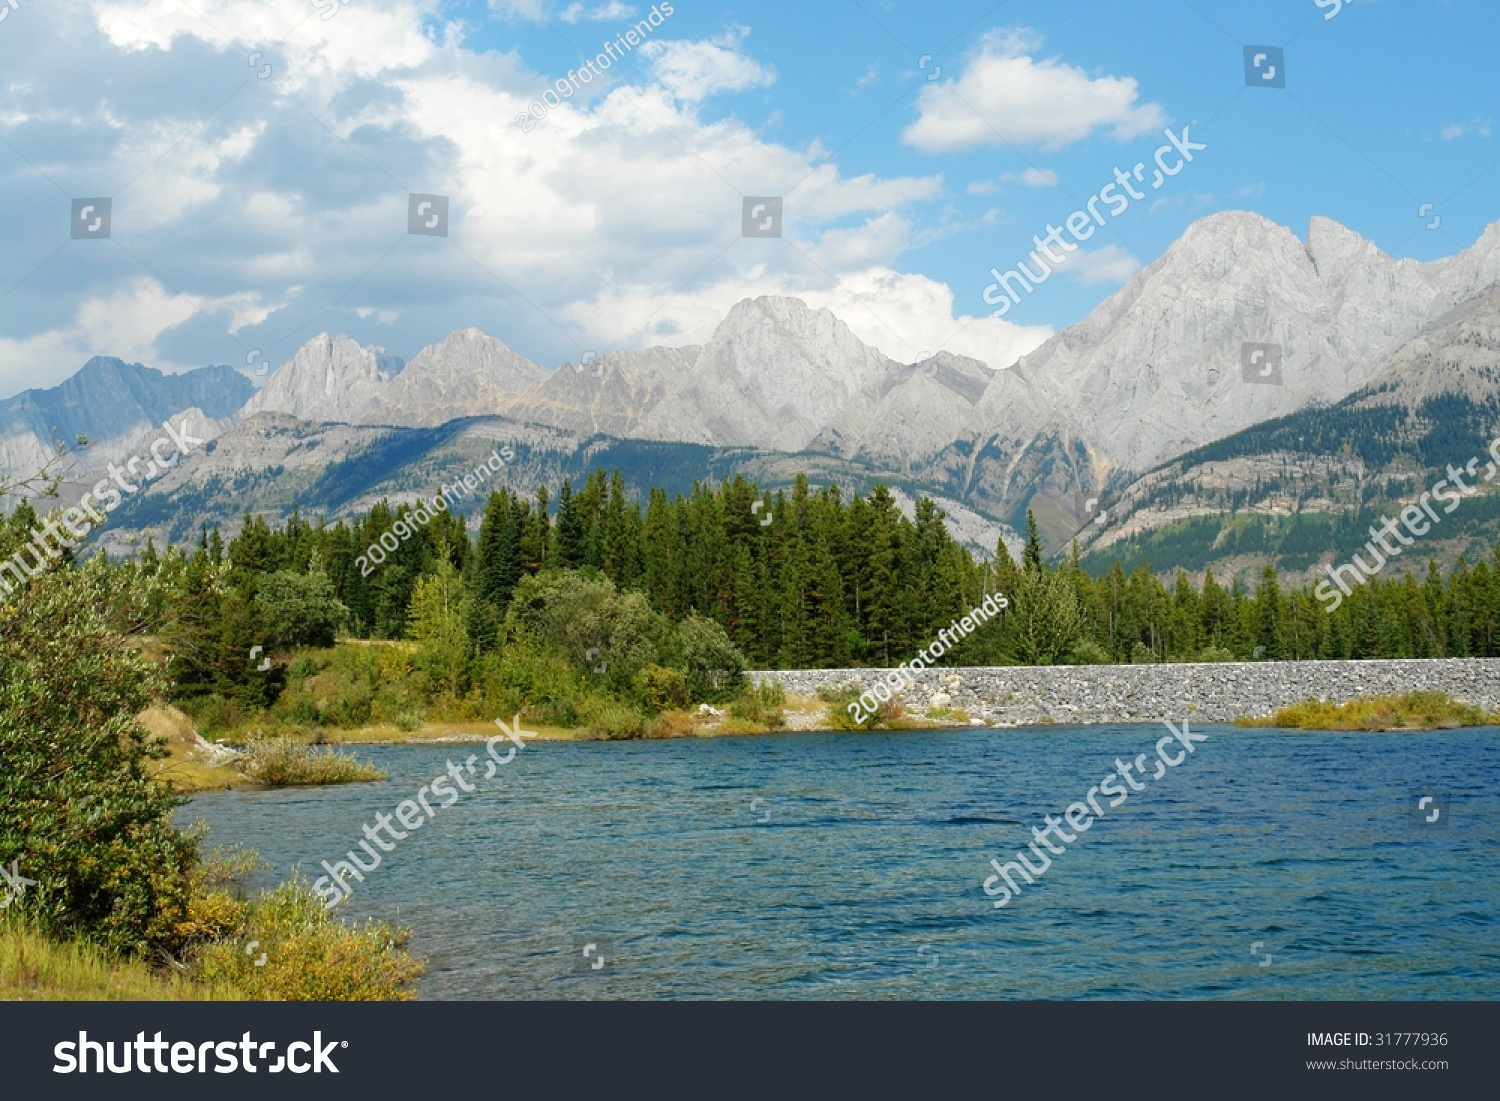 Summer View Of Rocky Mountains And Lake In Lights Shadows Kananaskis Country Alberta